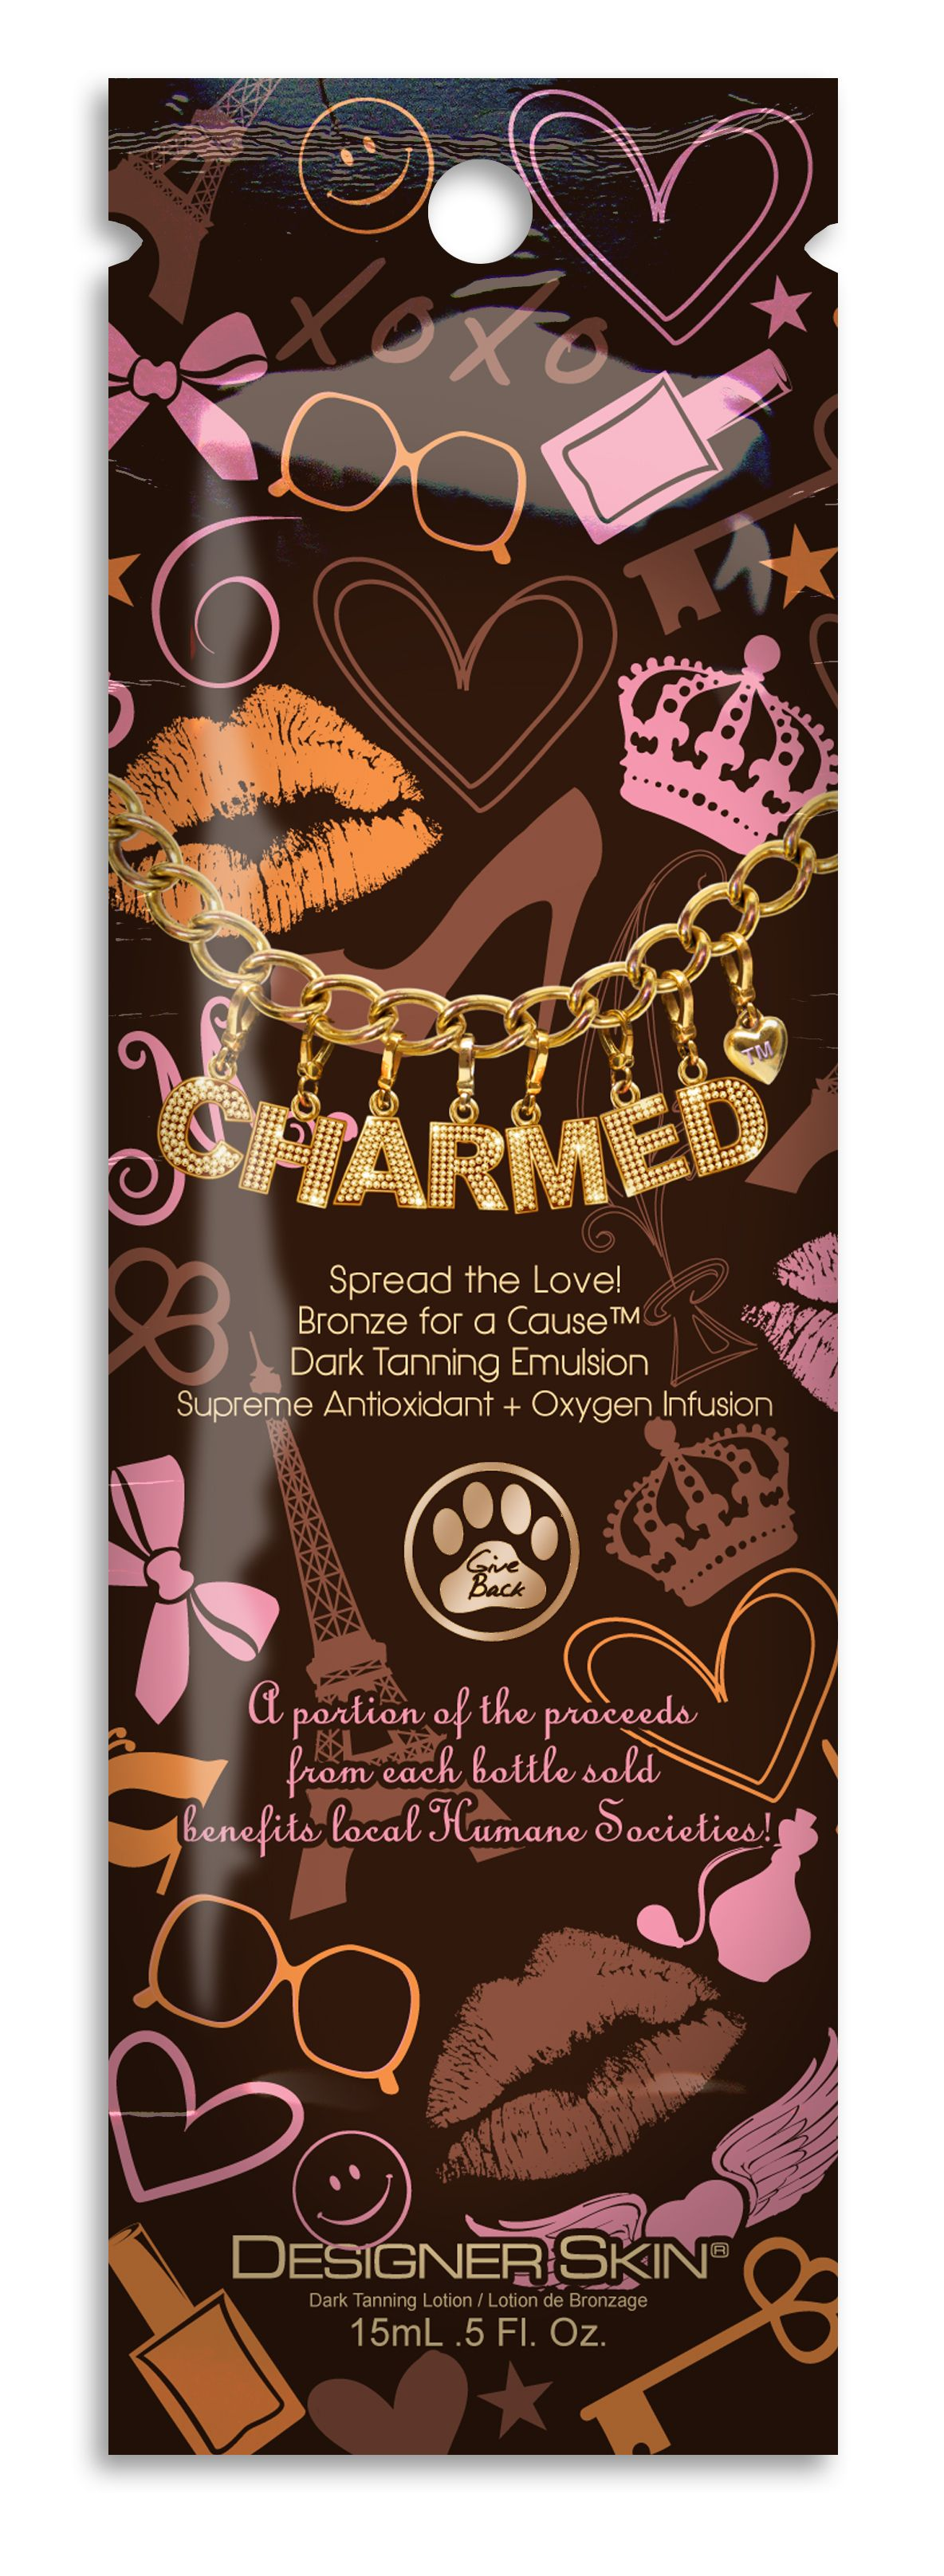 Charmed™ Bronze for a Cause™ Dark Tanning Emulsion Pkt